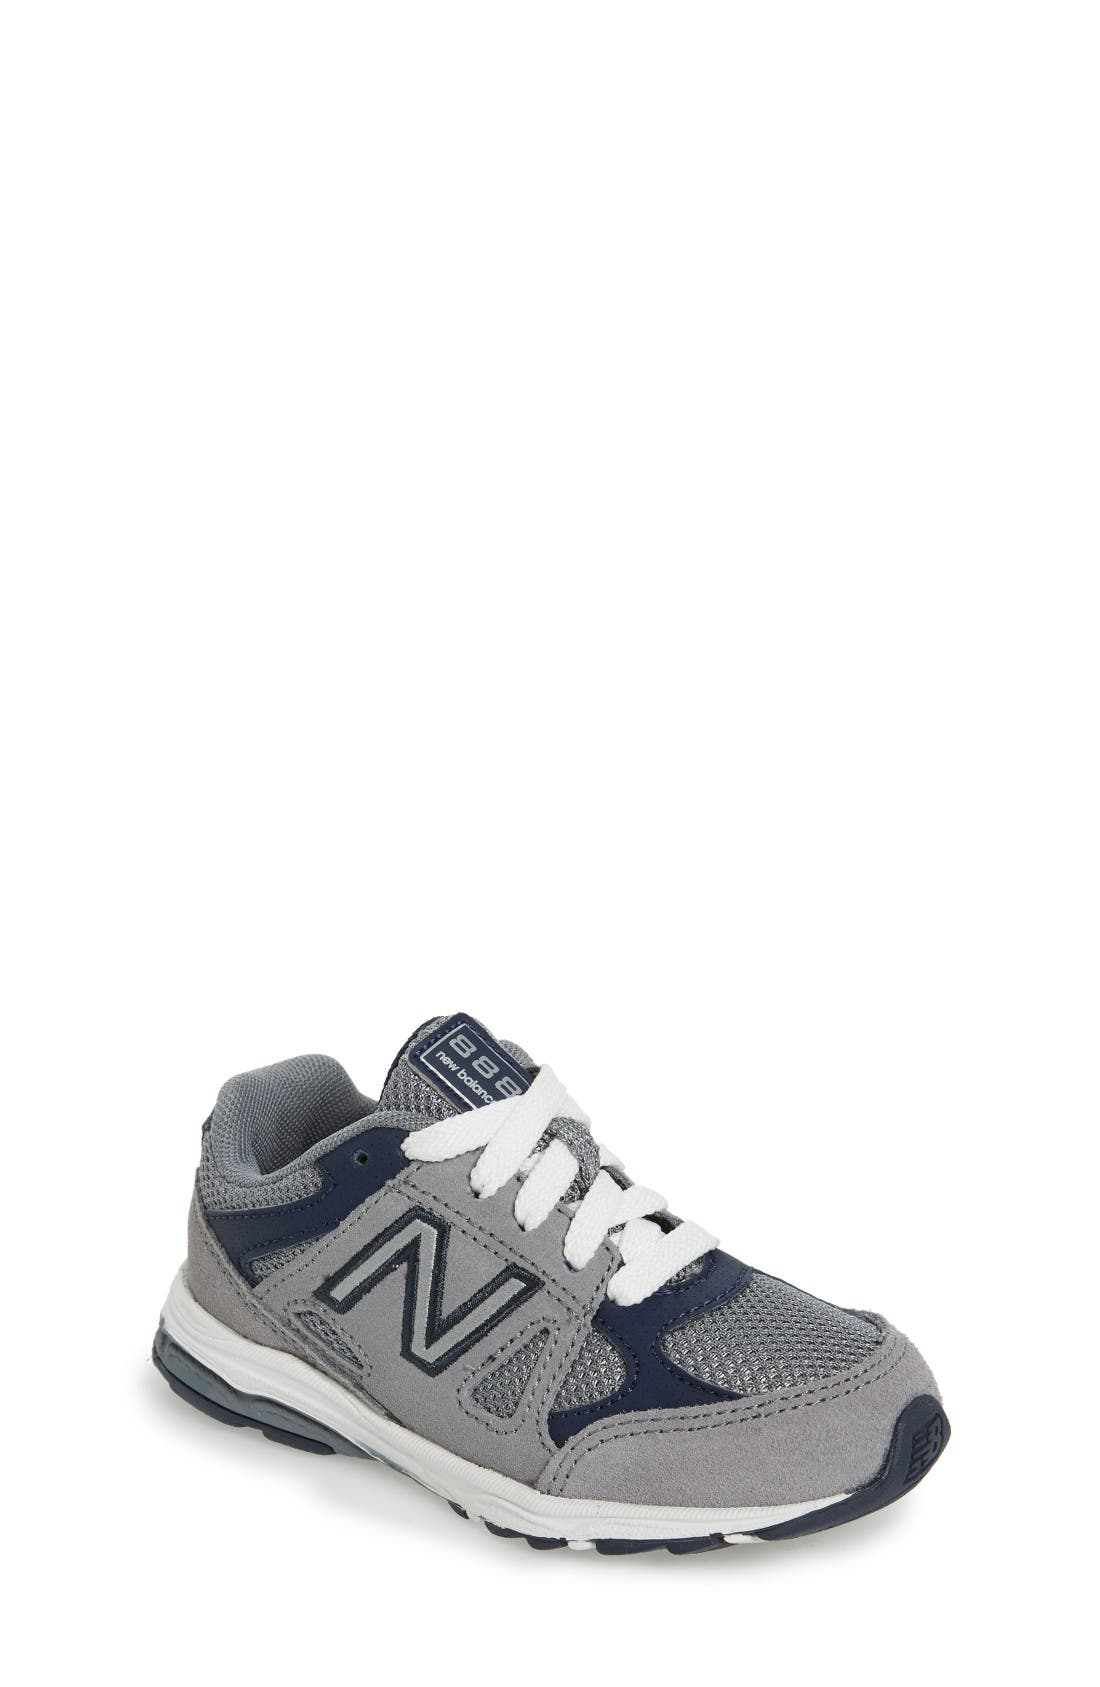 New Balance 888 Sneaker (Baby, Walker, Toddler, Little Kid & Big Kid)